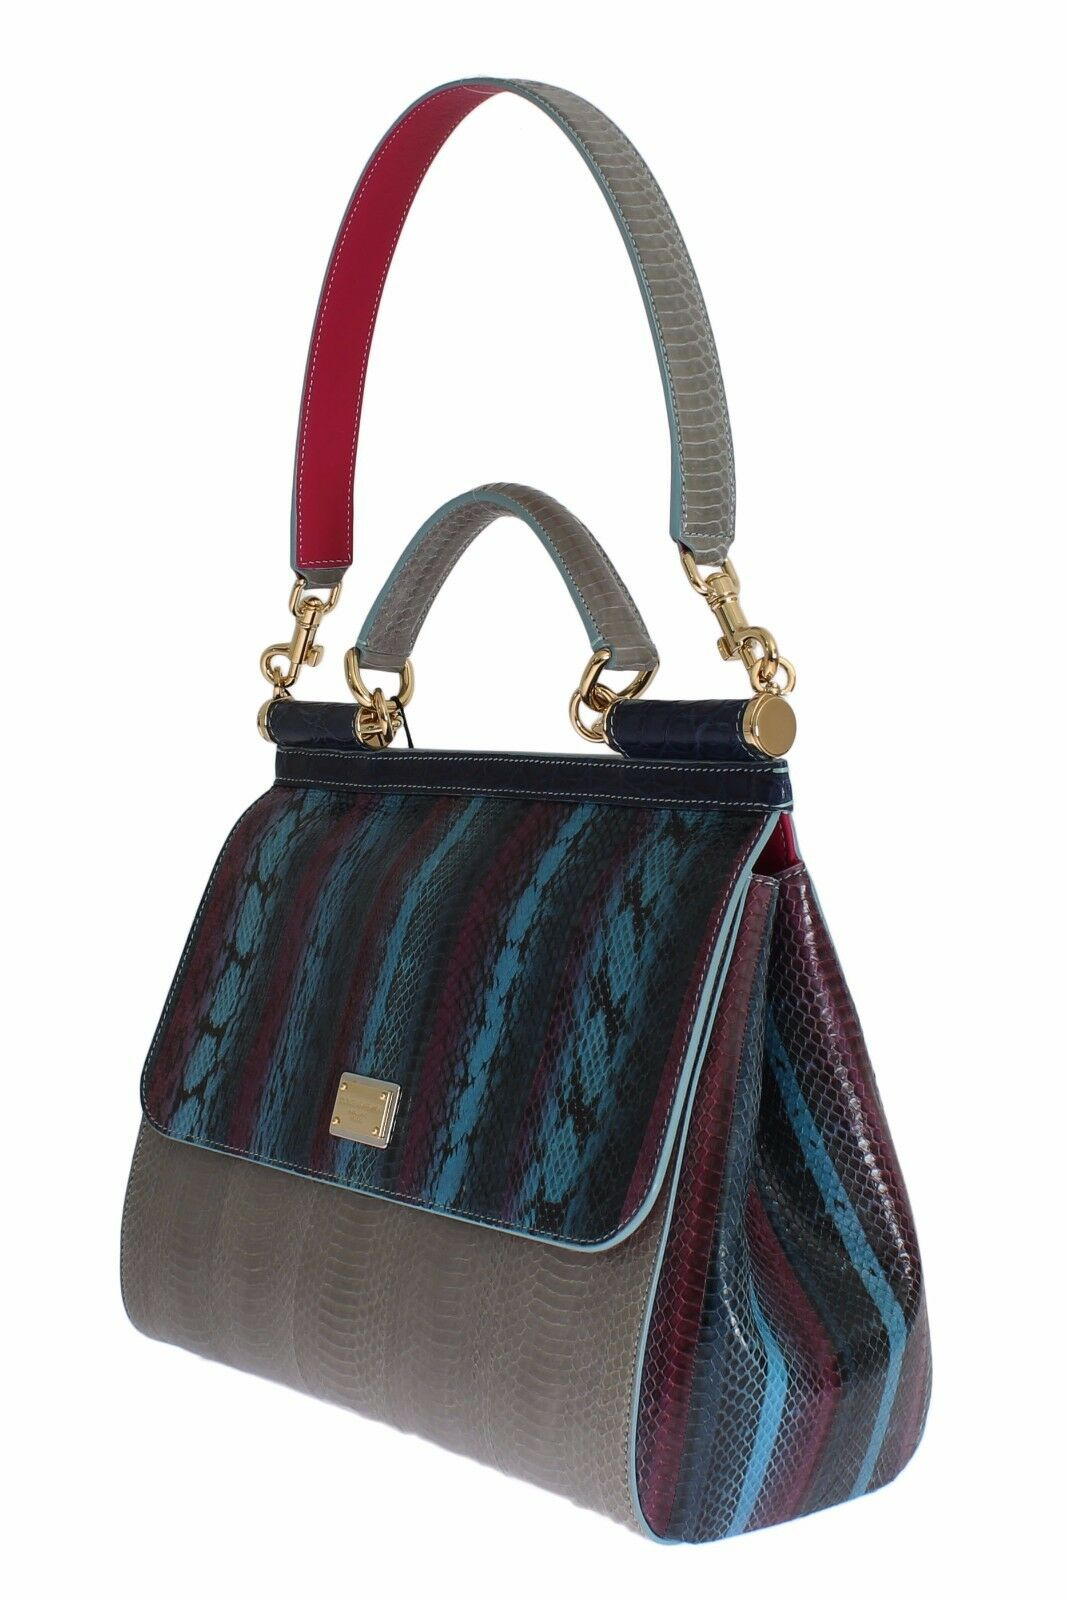 1be72d6b008 Dolce   Gabbana Multicolor Caiman Snakeskin Leather Sicily Hand Bag ...